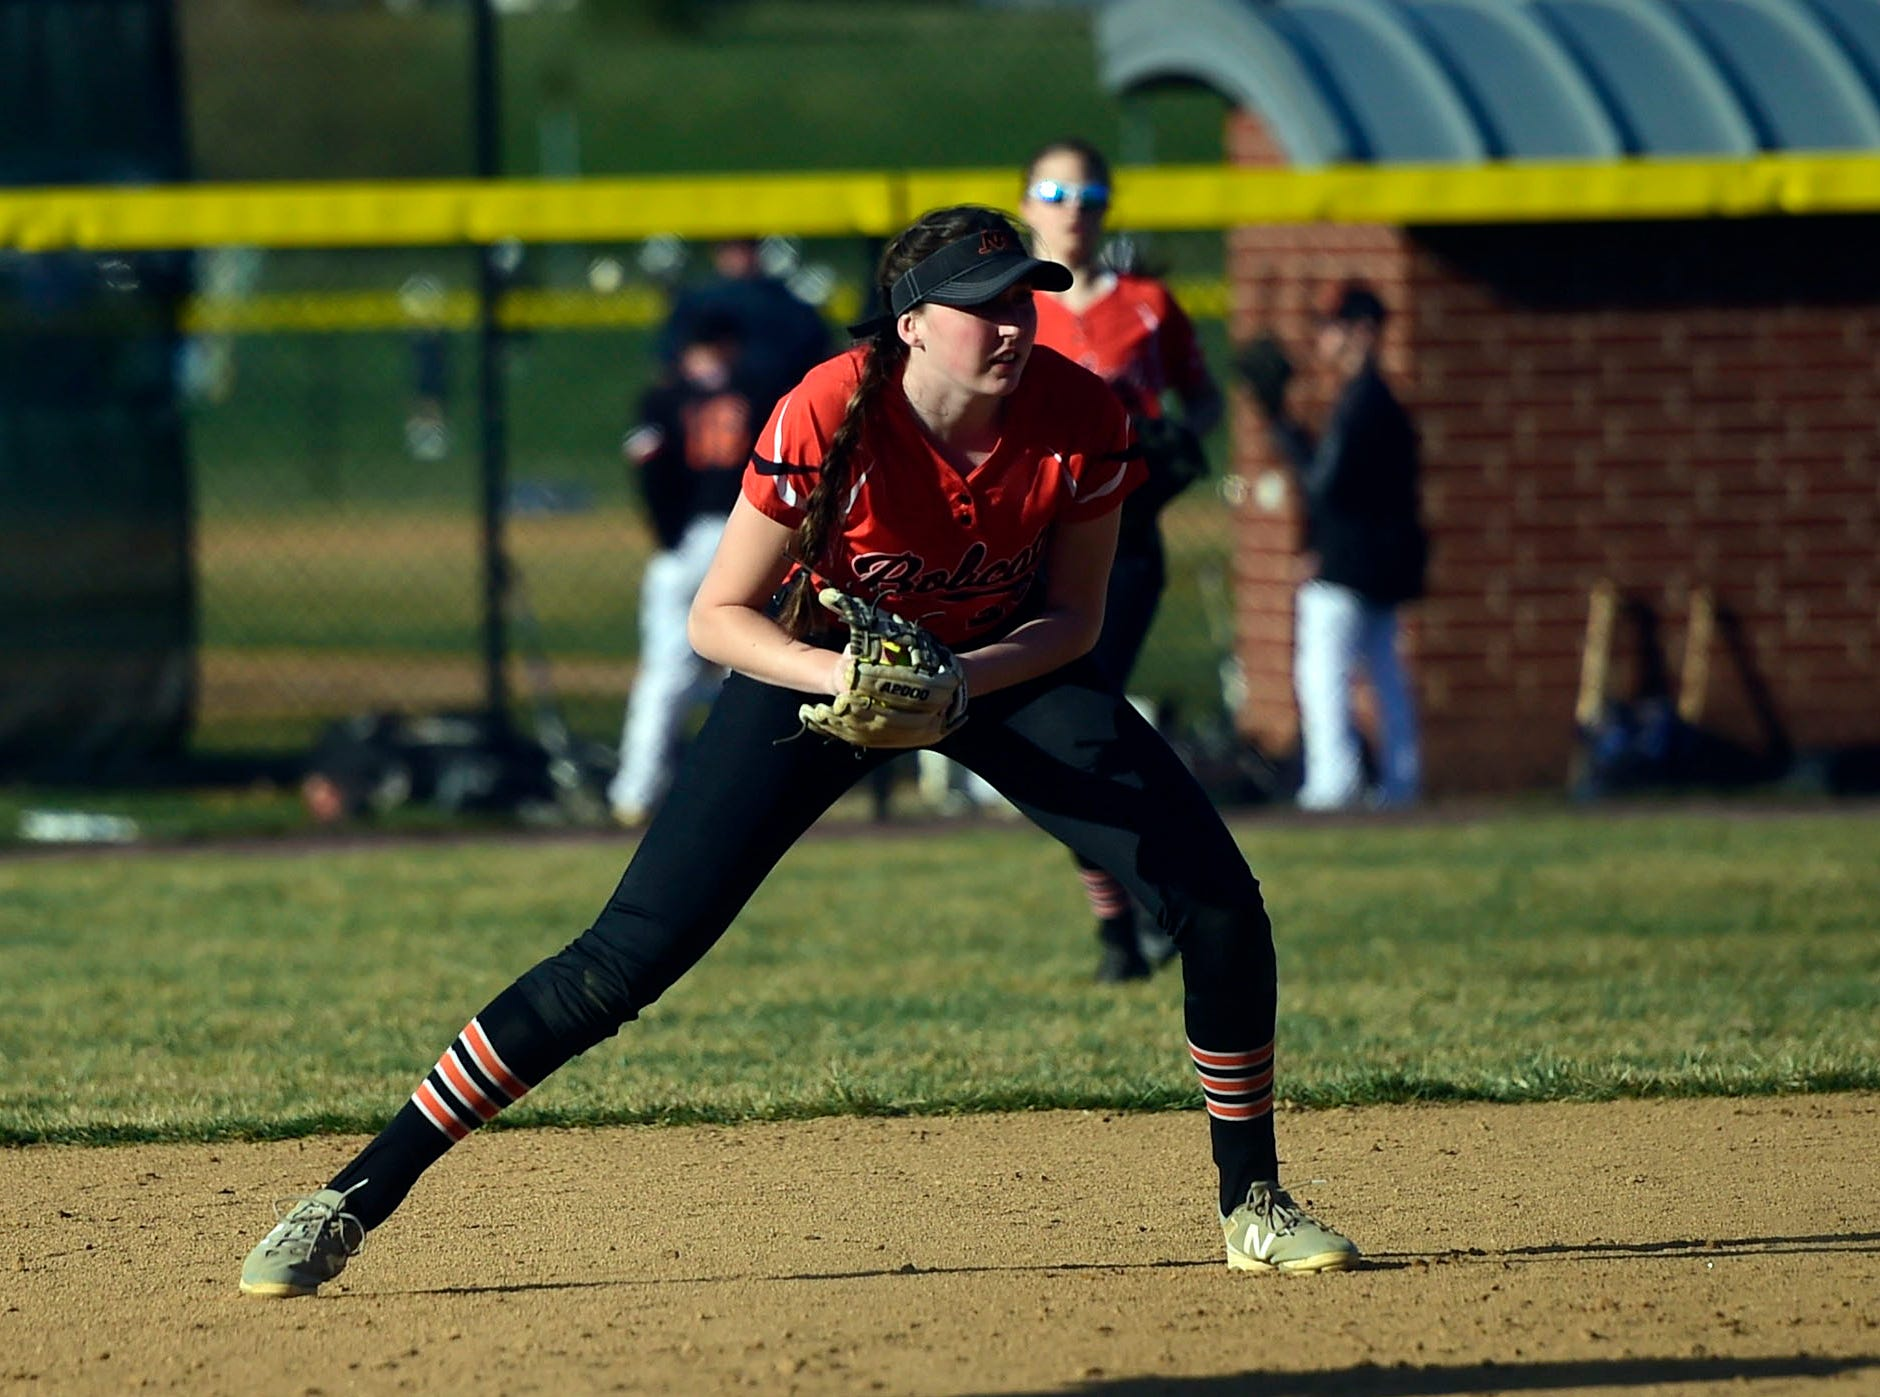 Northeastern shortstop Haley Updegraff fields a ball at shortstop Wednesday, April 3, 2019 at Spring Grove. The YAIAA Division II Player of the Year at catcher last season, the NCAA Division I recruit has moved to shortstop this season. She homered and went 3-for-5 with four runs scored.